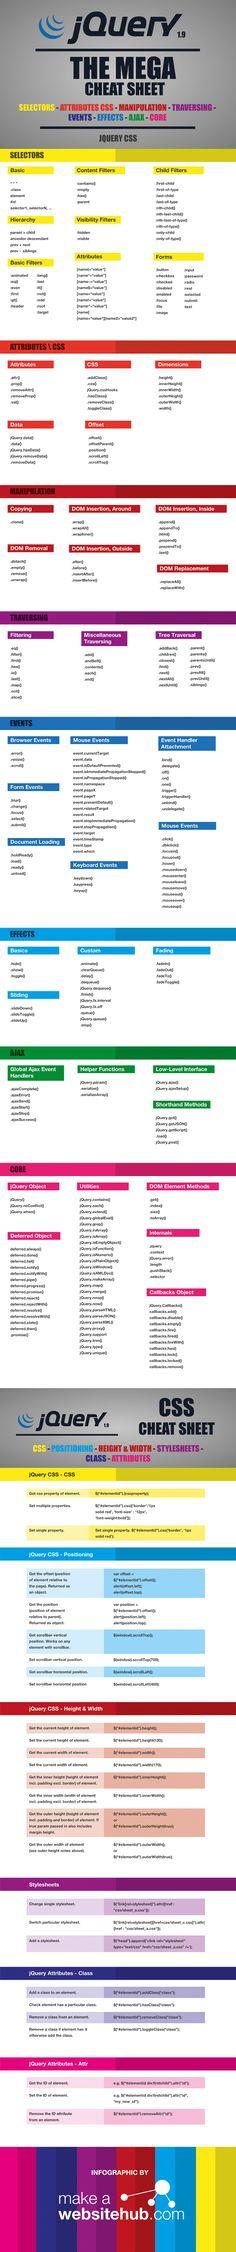 jQuery Mega Cheat Sheet 2015